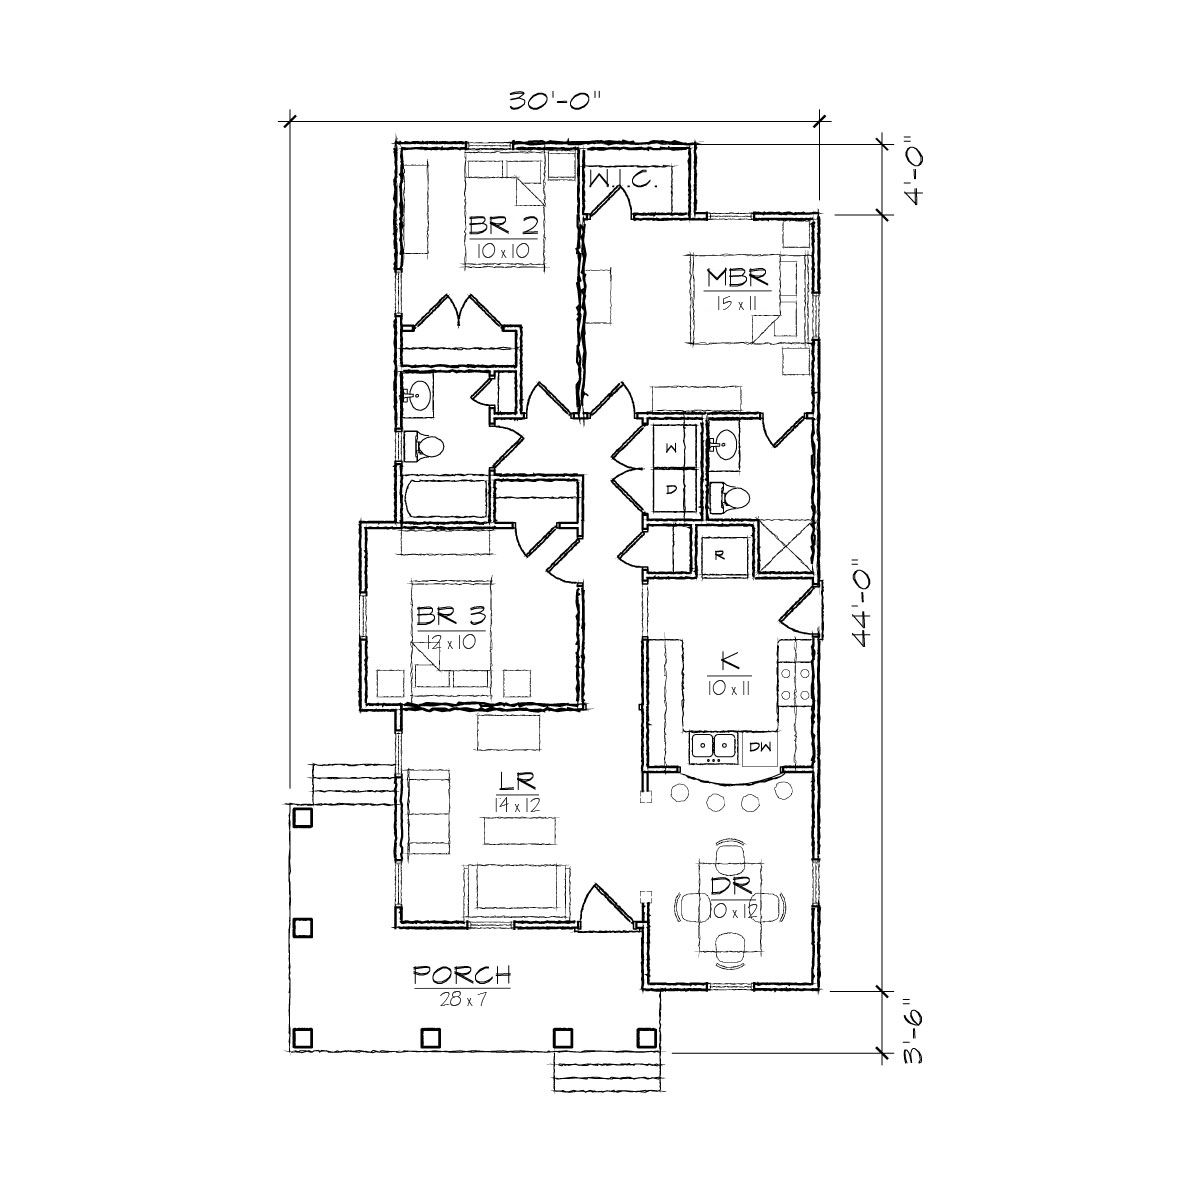 Bungalow Floor Plans bungalow country craftsman house plan 59198 Small Spanish Floor Plans Juniper I Bungalow Floor Plan